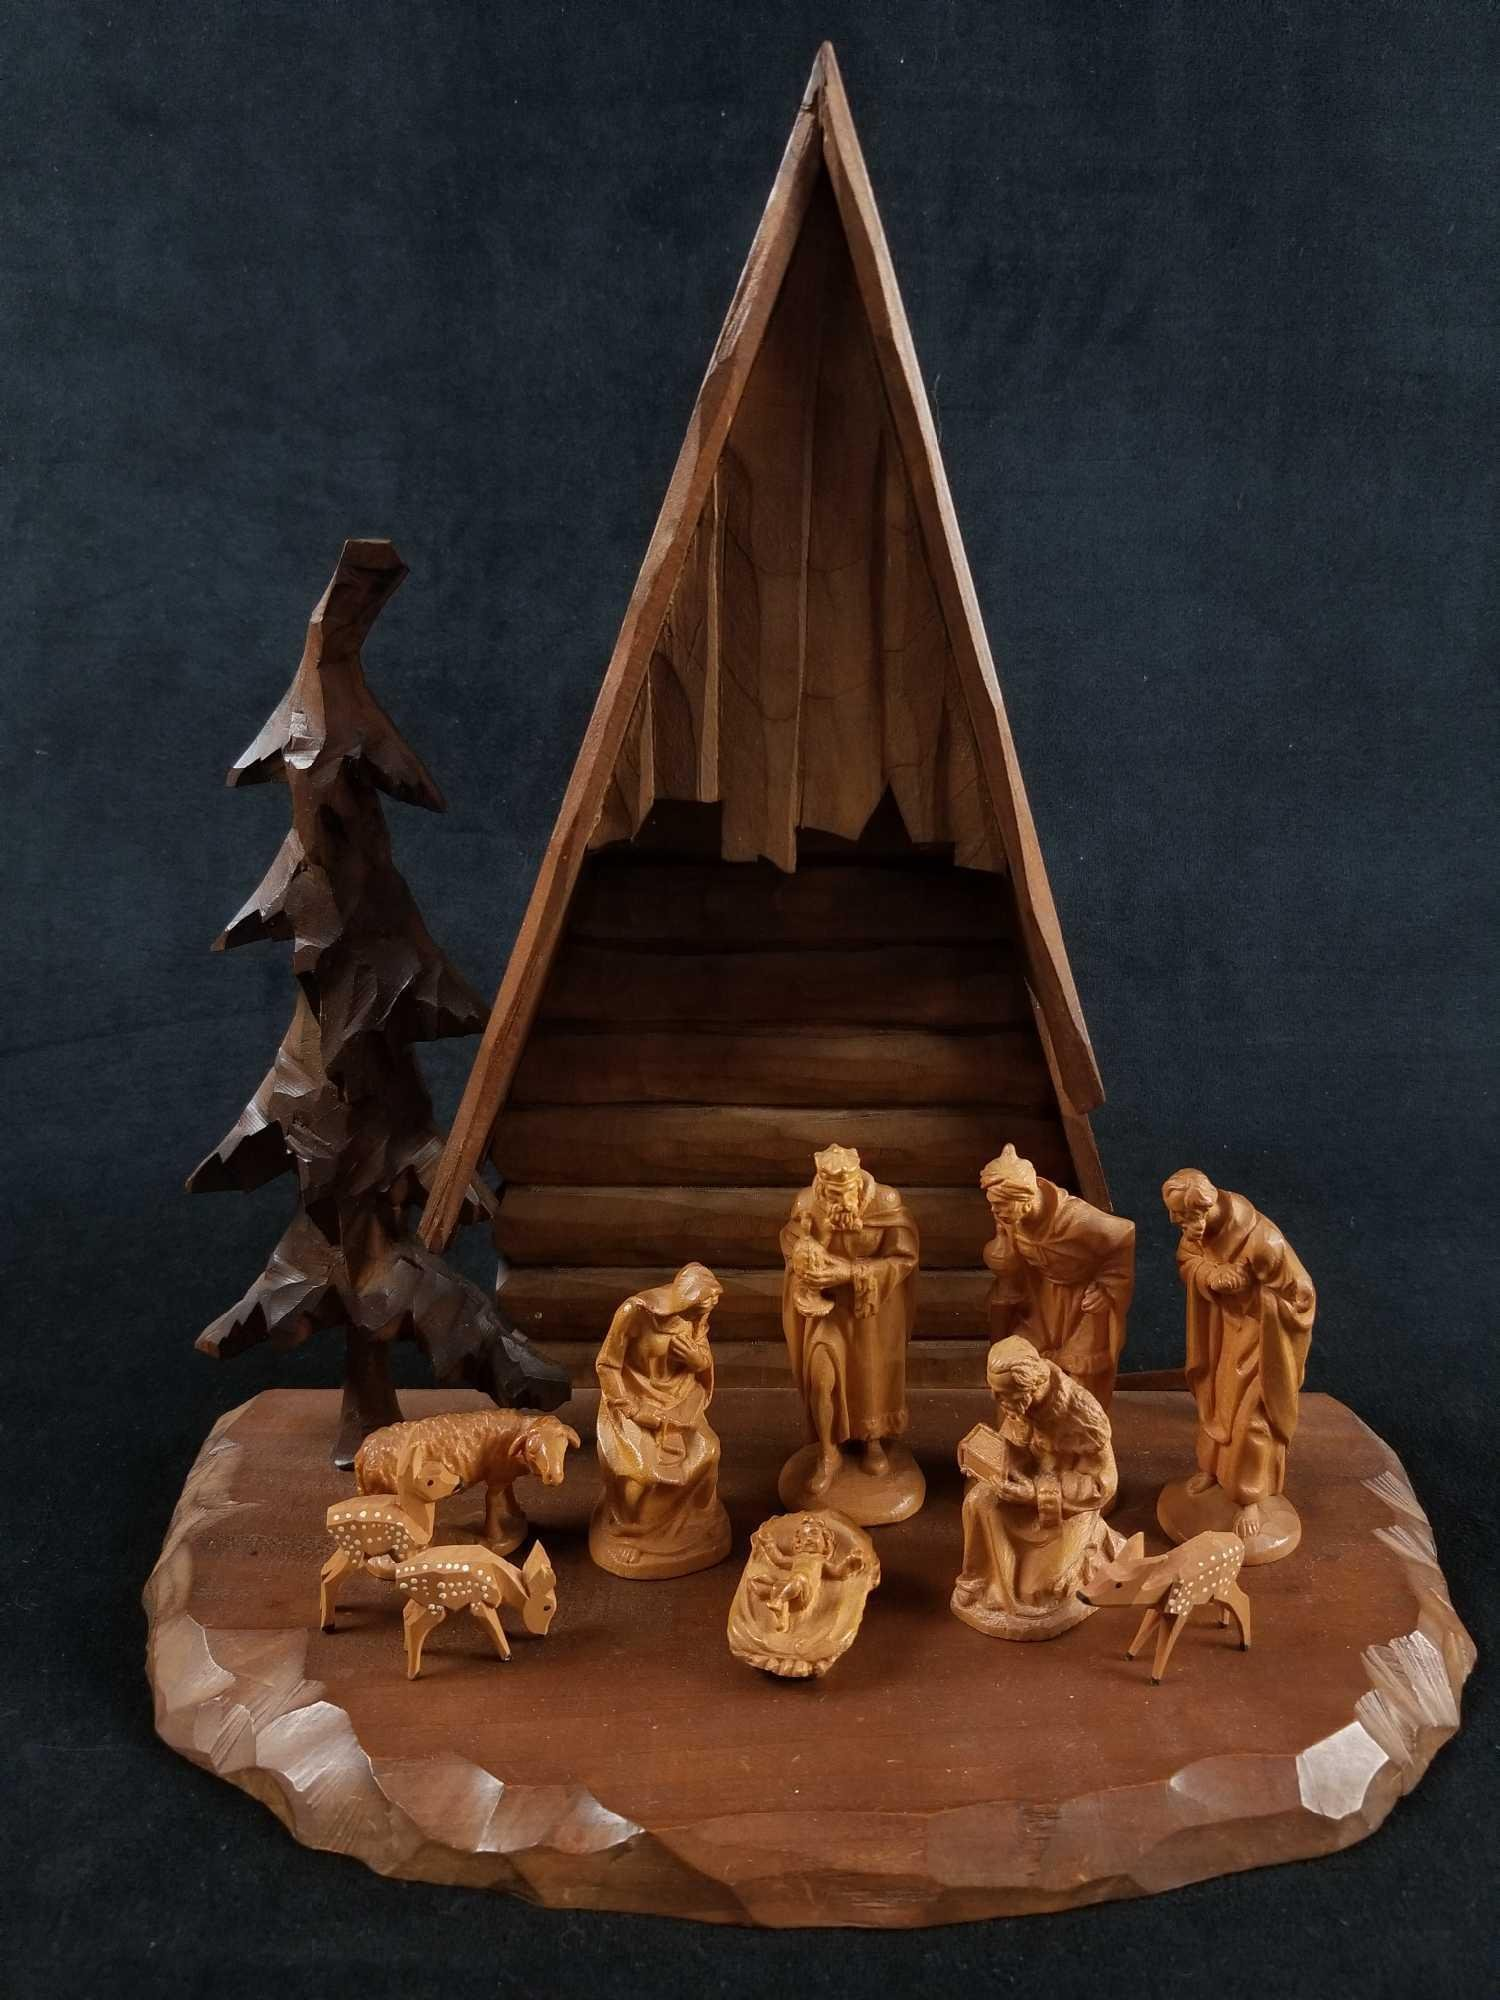 Italian Wood Carvings of The Nativity by ANRI